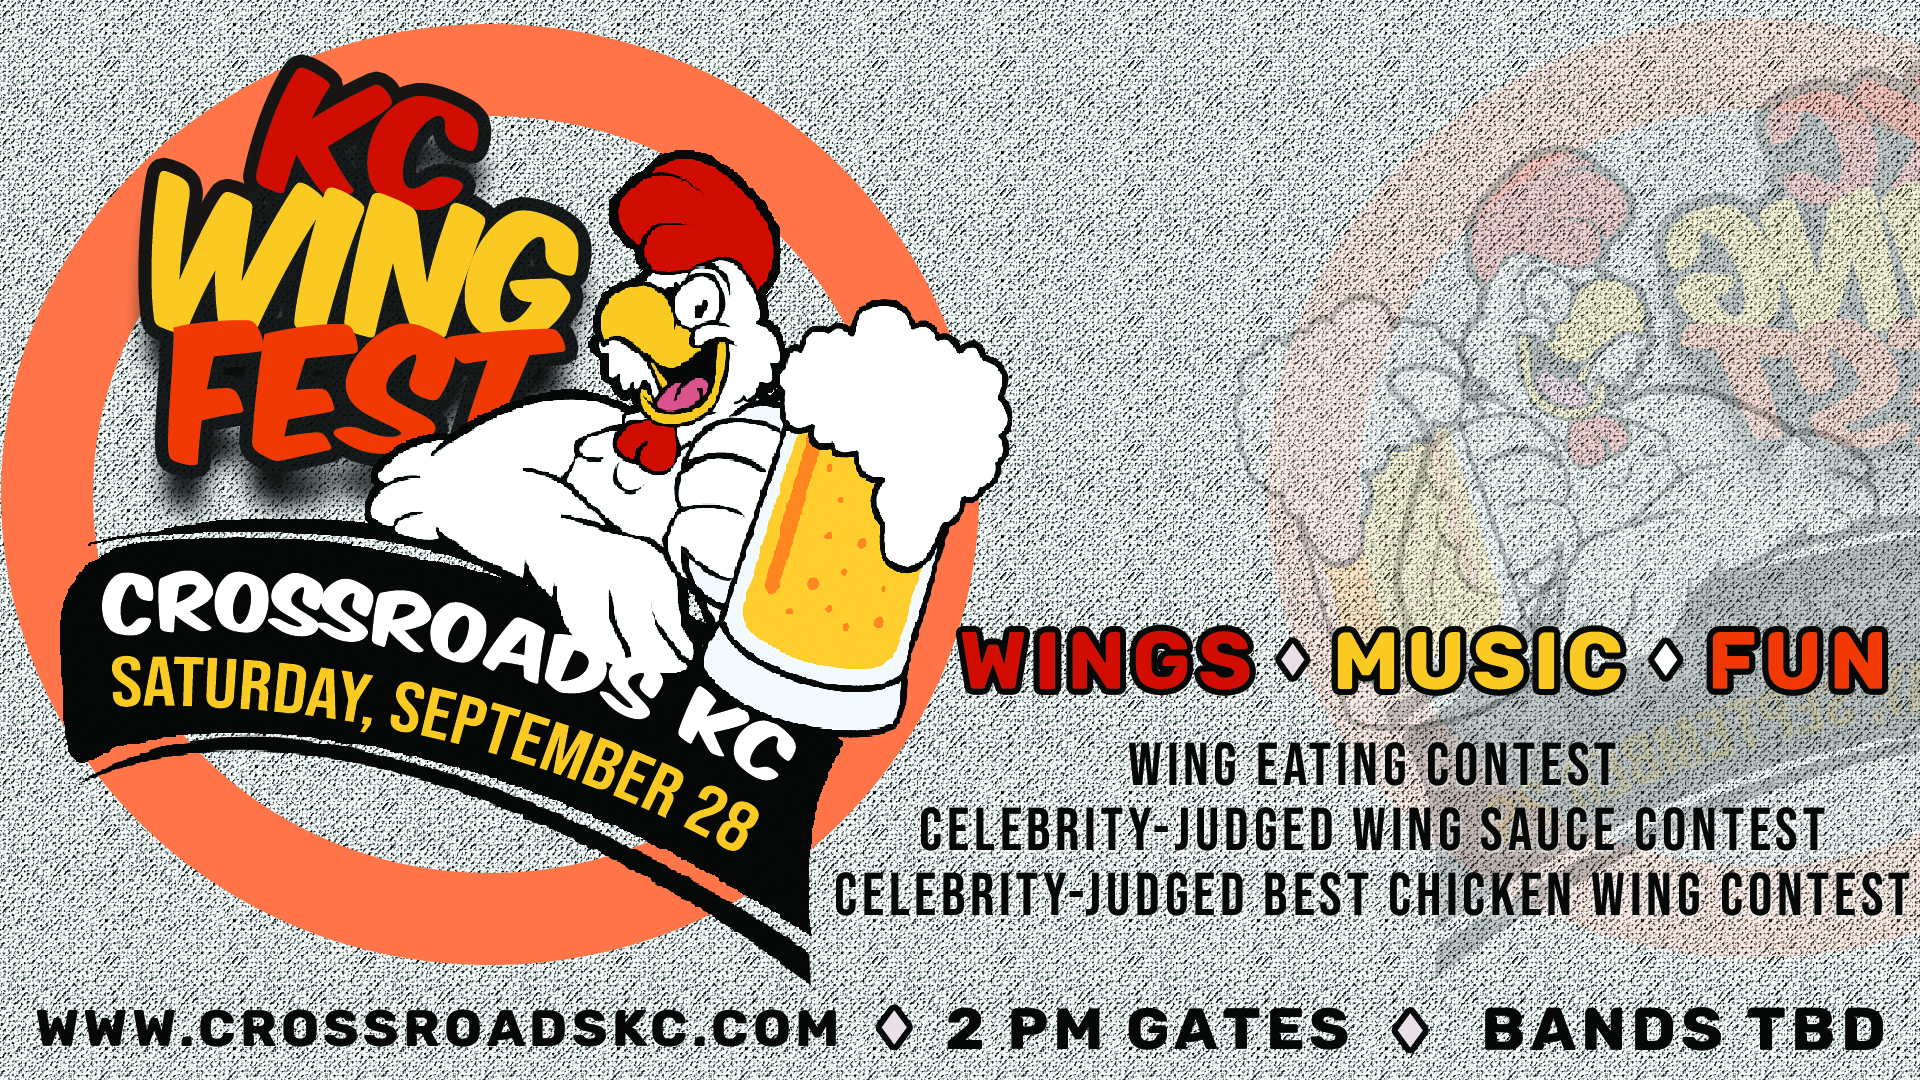 CrossroadsKC - Kansas City's Premier Outdoor Live Music Venue